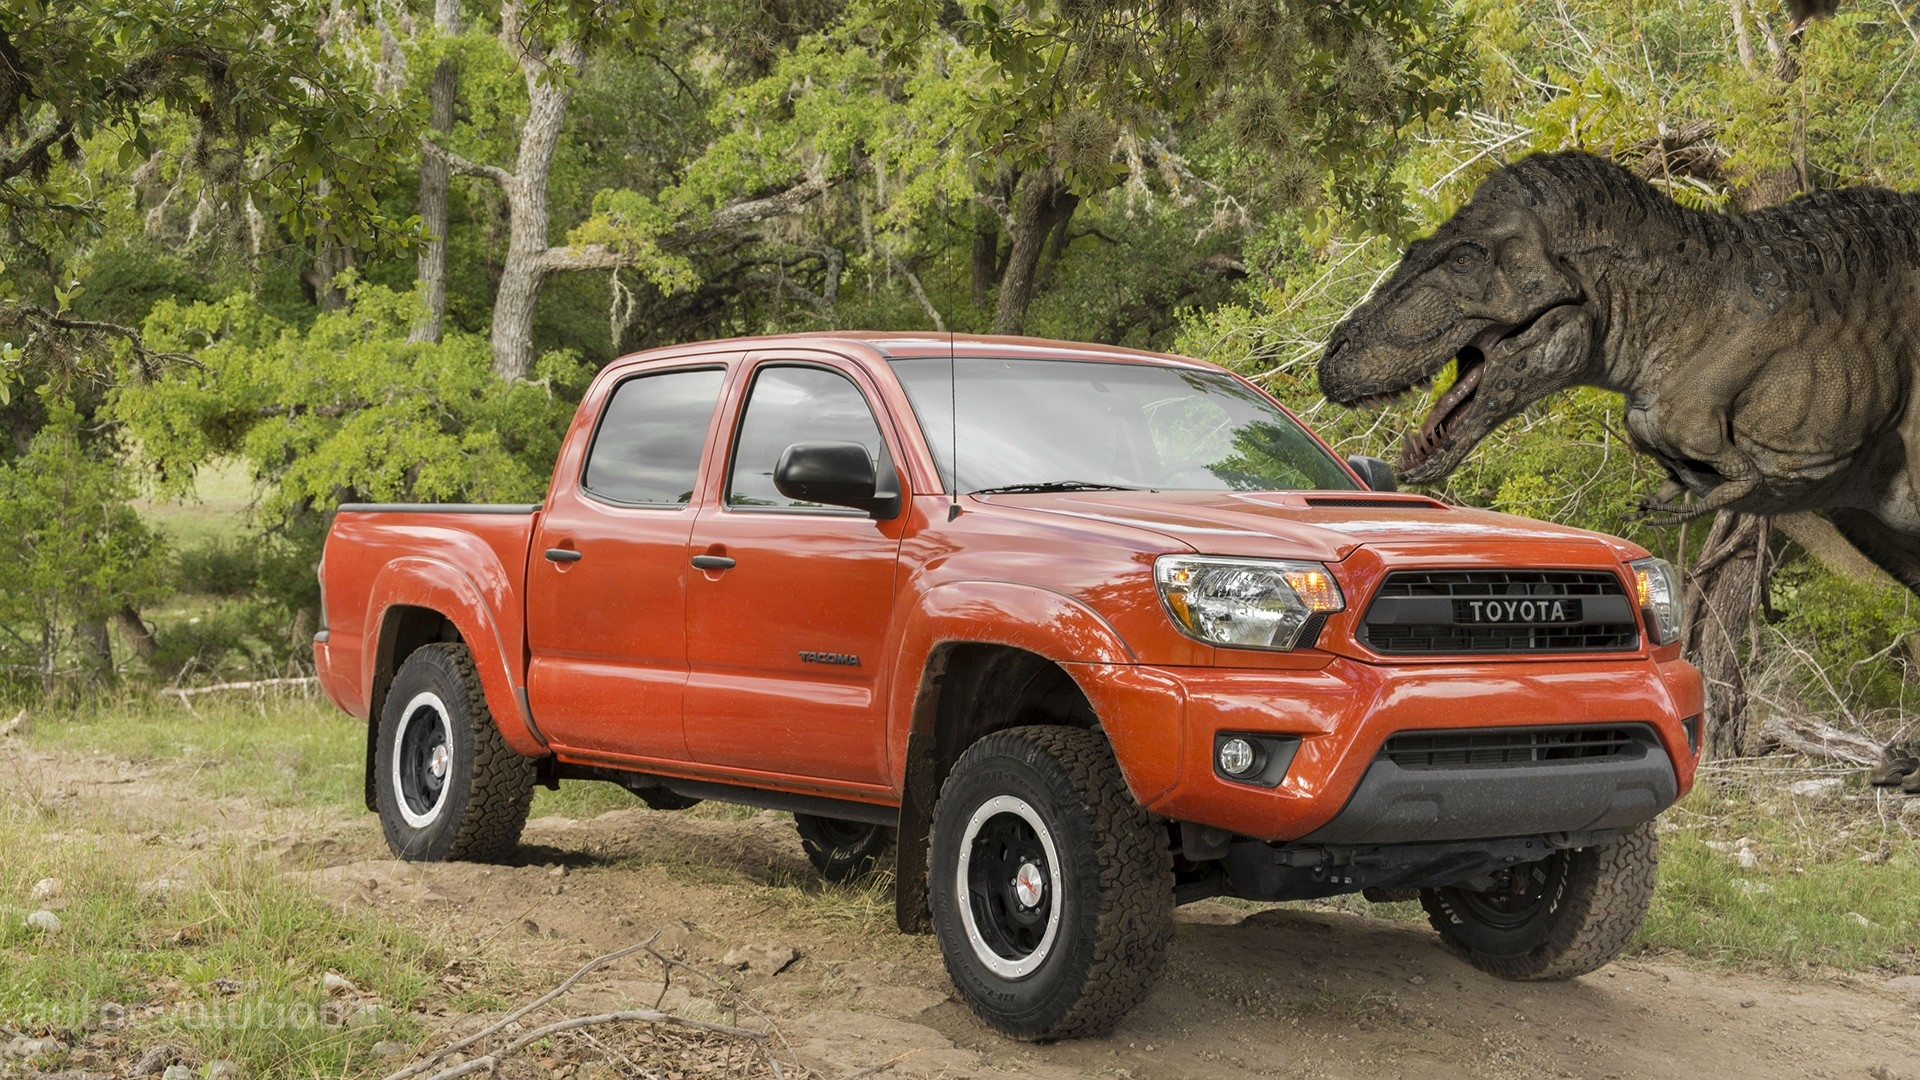 2015 Toyota Tacoma Trd Pro Hd Wallpapers Conquering